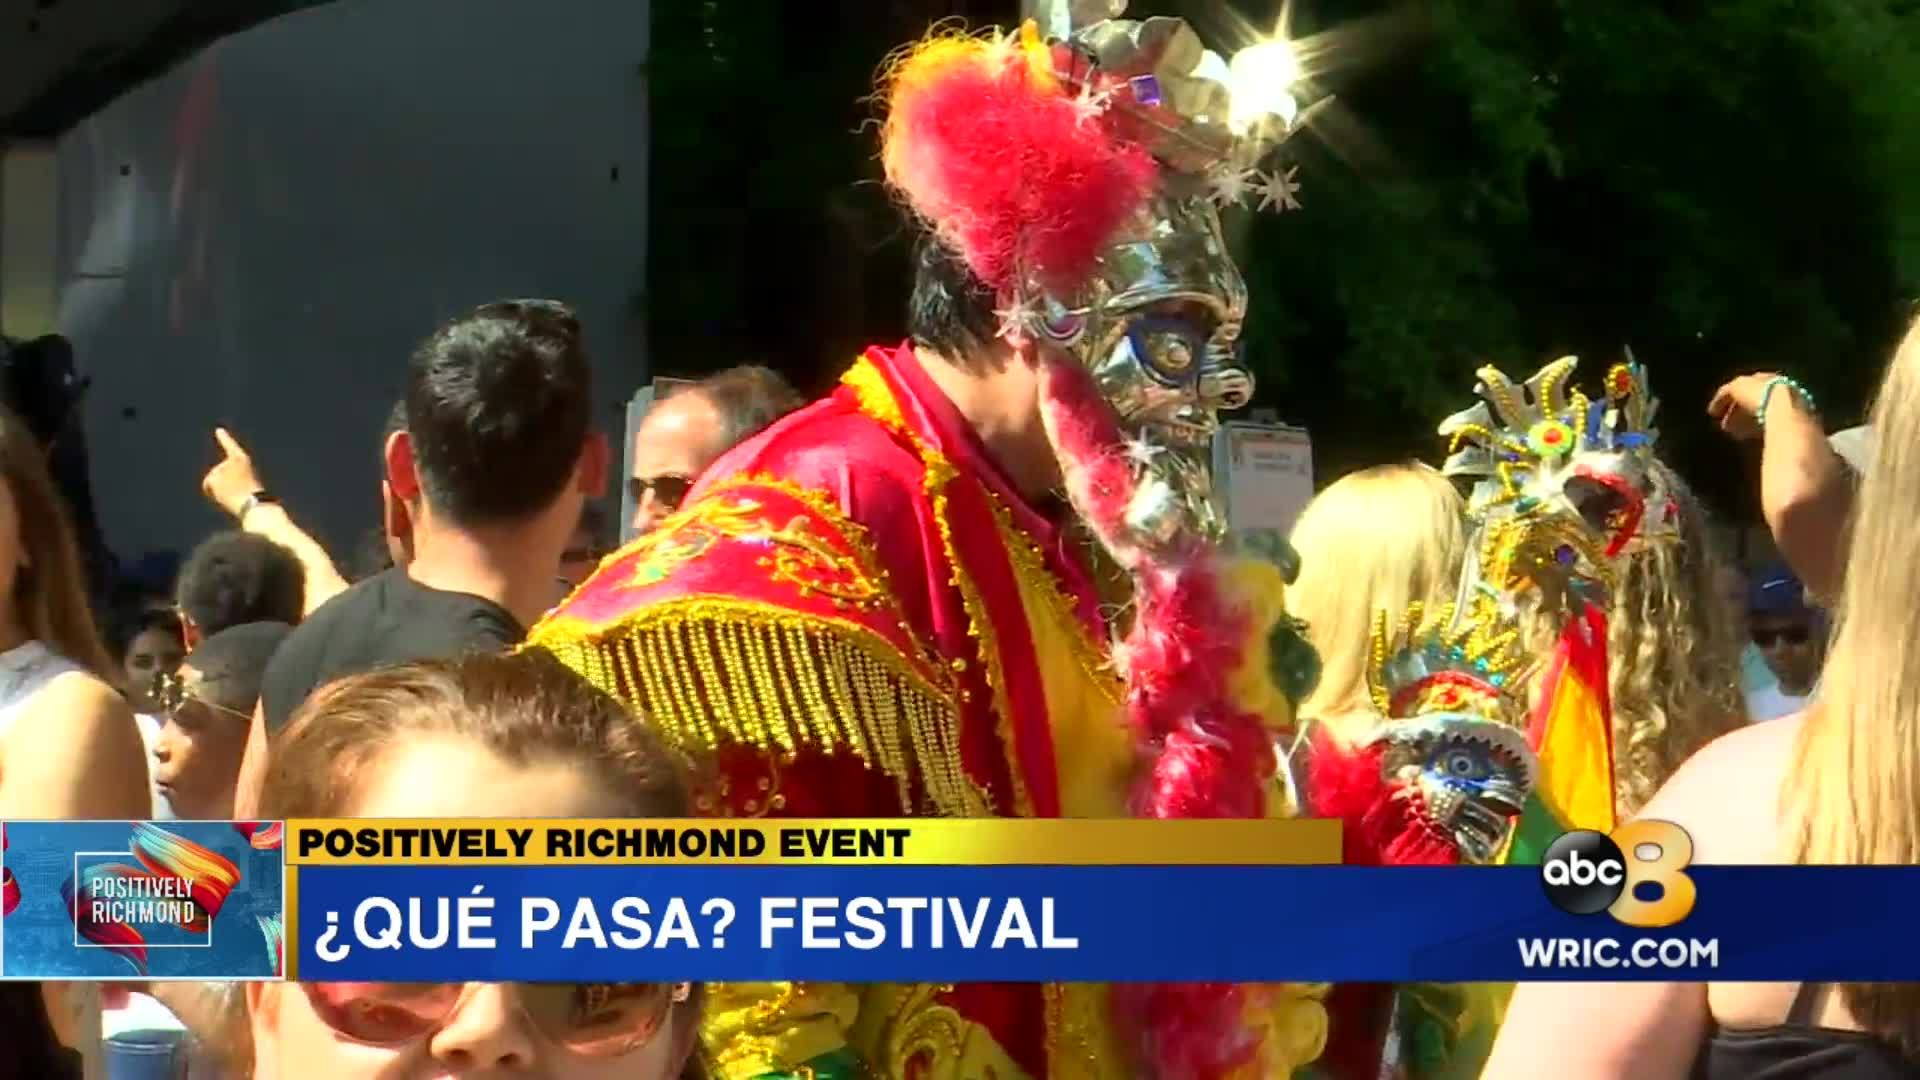 Que__Pasa_Festival_brings_thousands_to_t_4_20190505034446